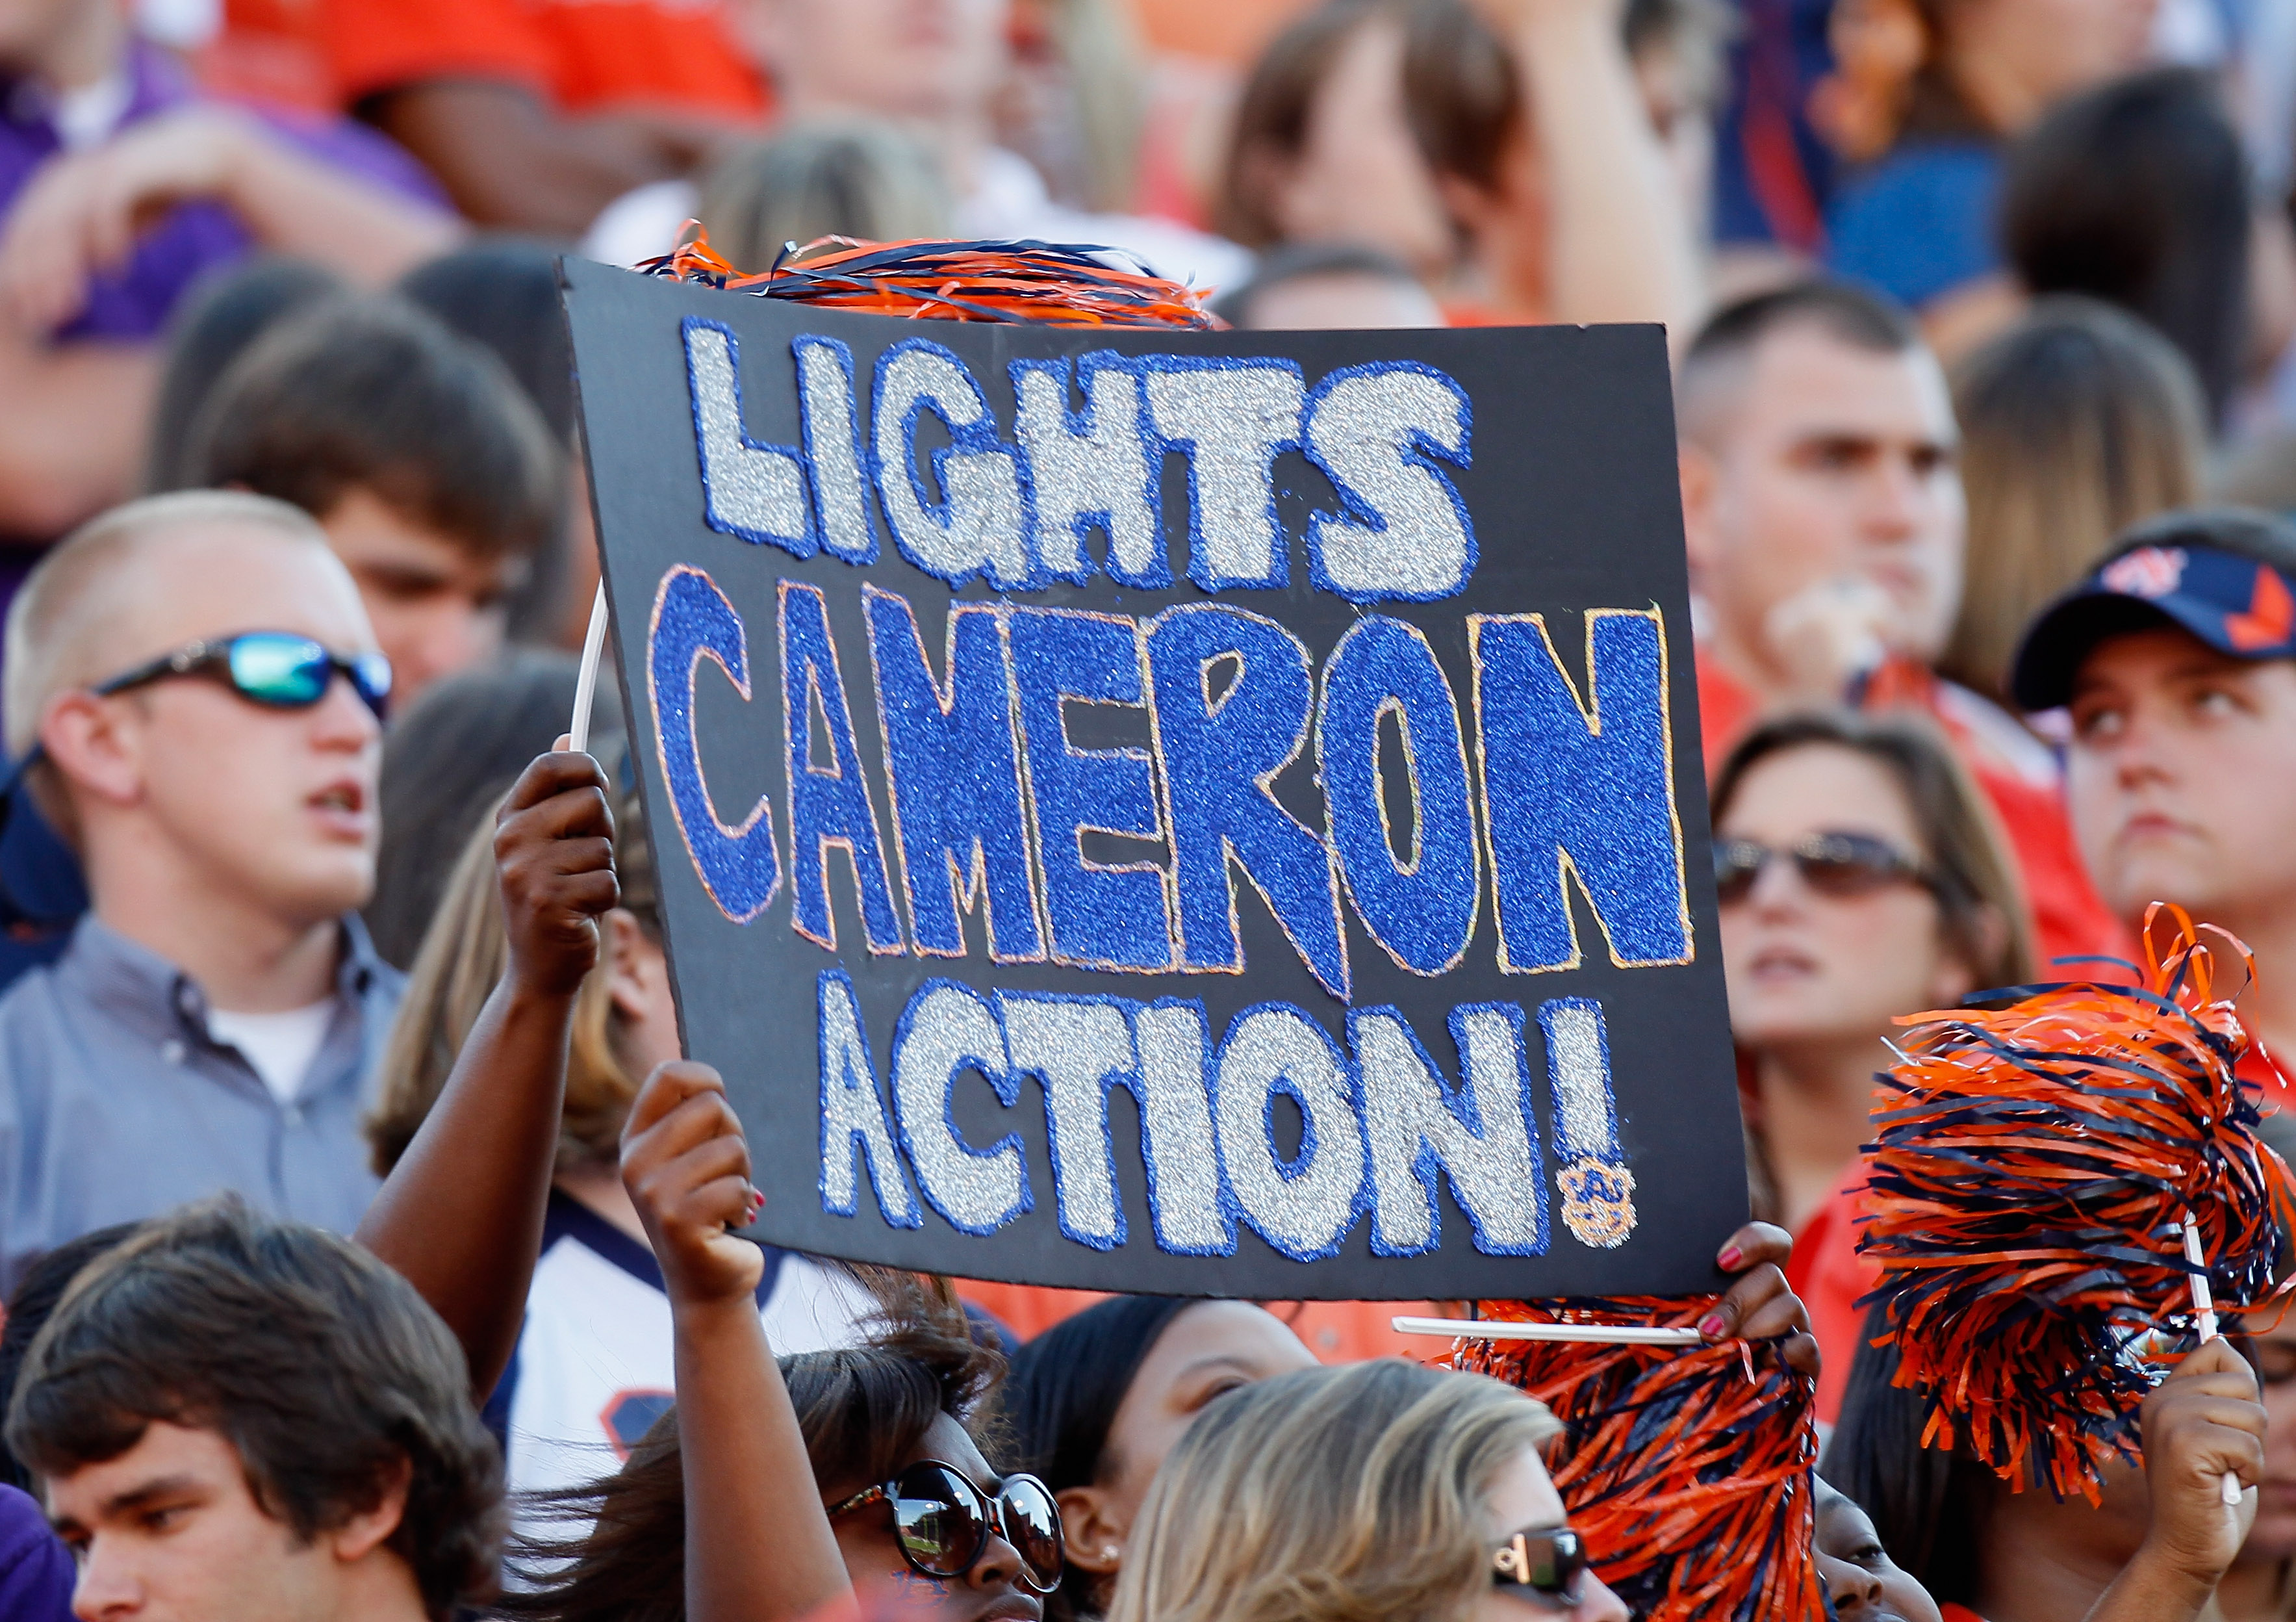 AUBURN, AL - OCTOBER 23:  Fans hold up a sign about quarterback Cameron Newton #2 of the Auburn Tigers against the LSU Tigers at Jordan-Hare Stadium on October 23, 2010 in Auburn, Alabama.  (Photo by Kevin C. Cox/Getty Images)